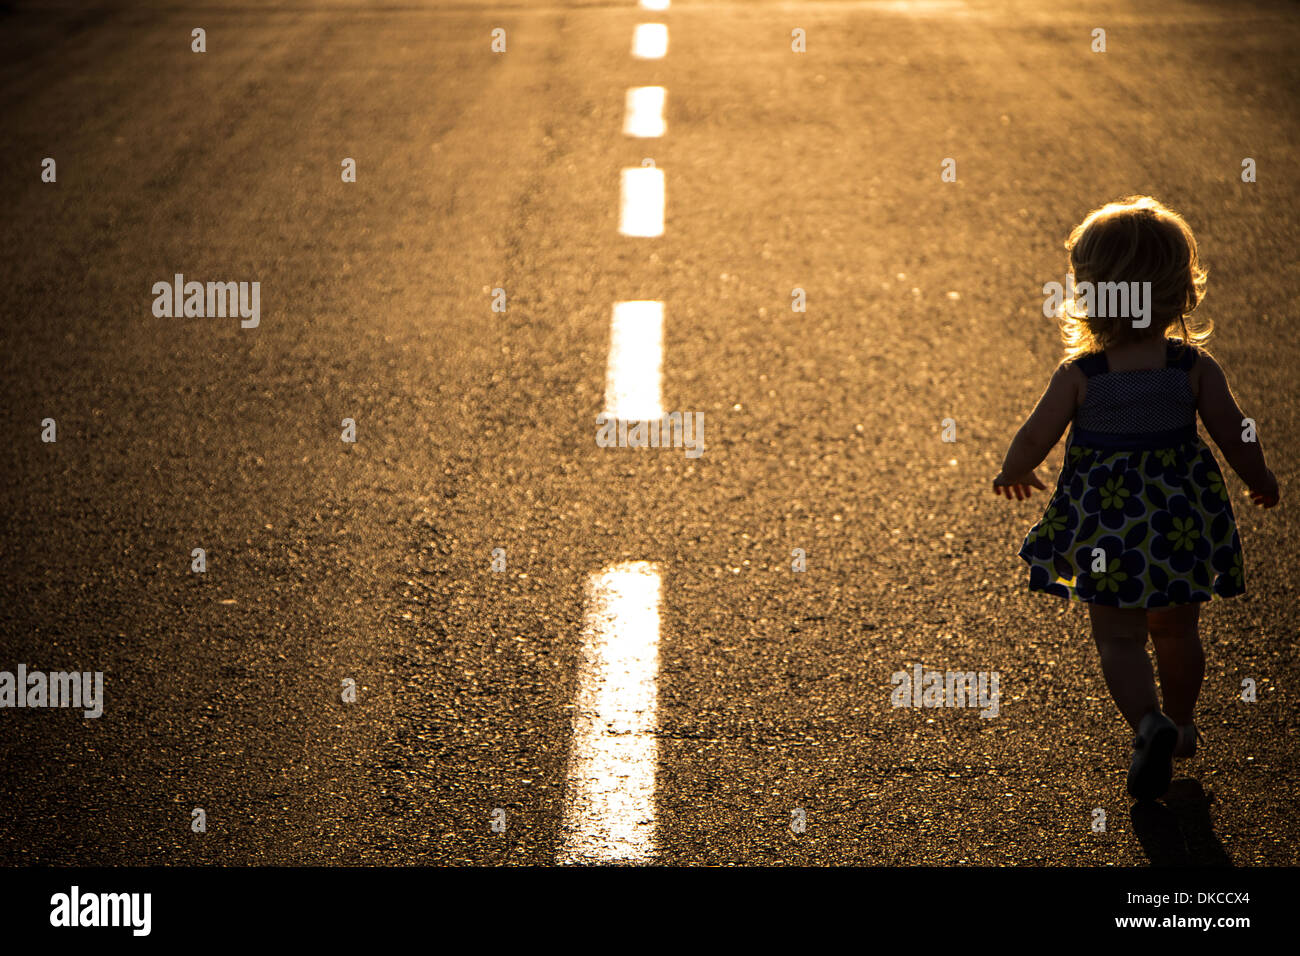 Little girl running away on the road ahead - Stock Image